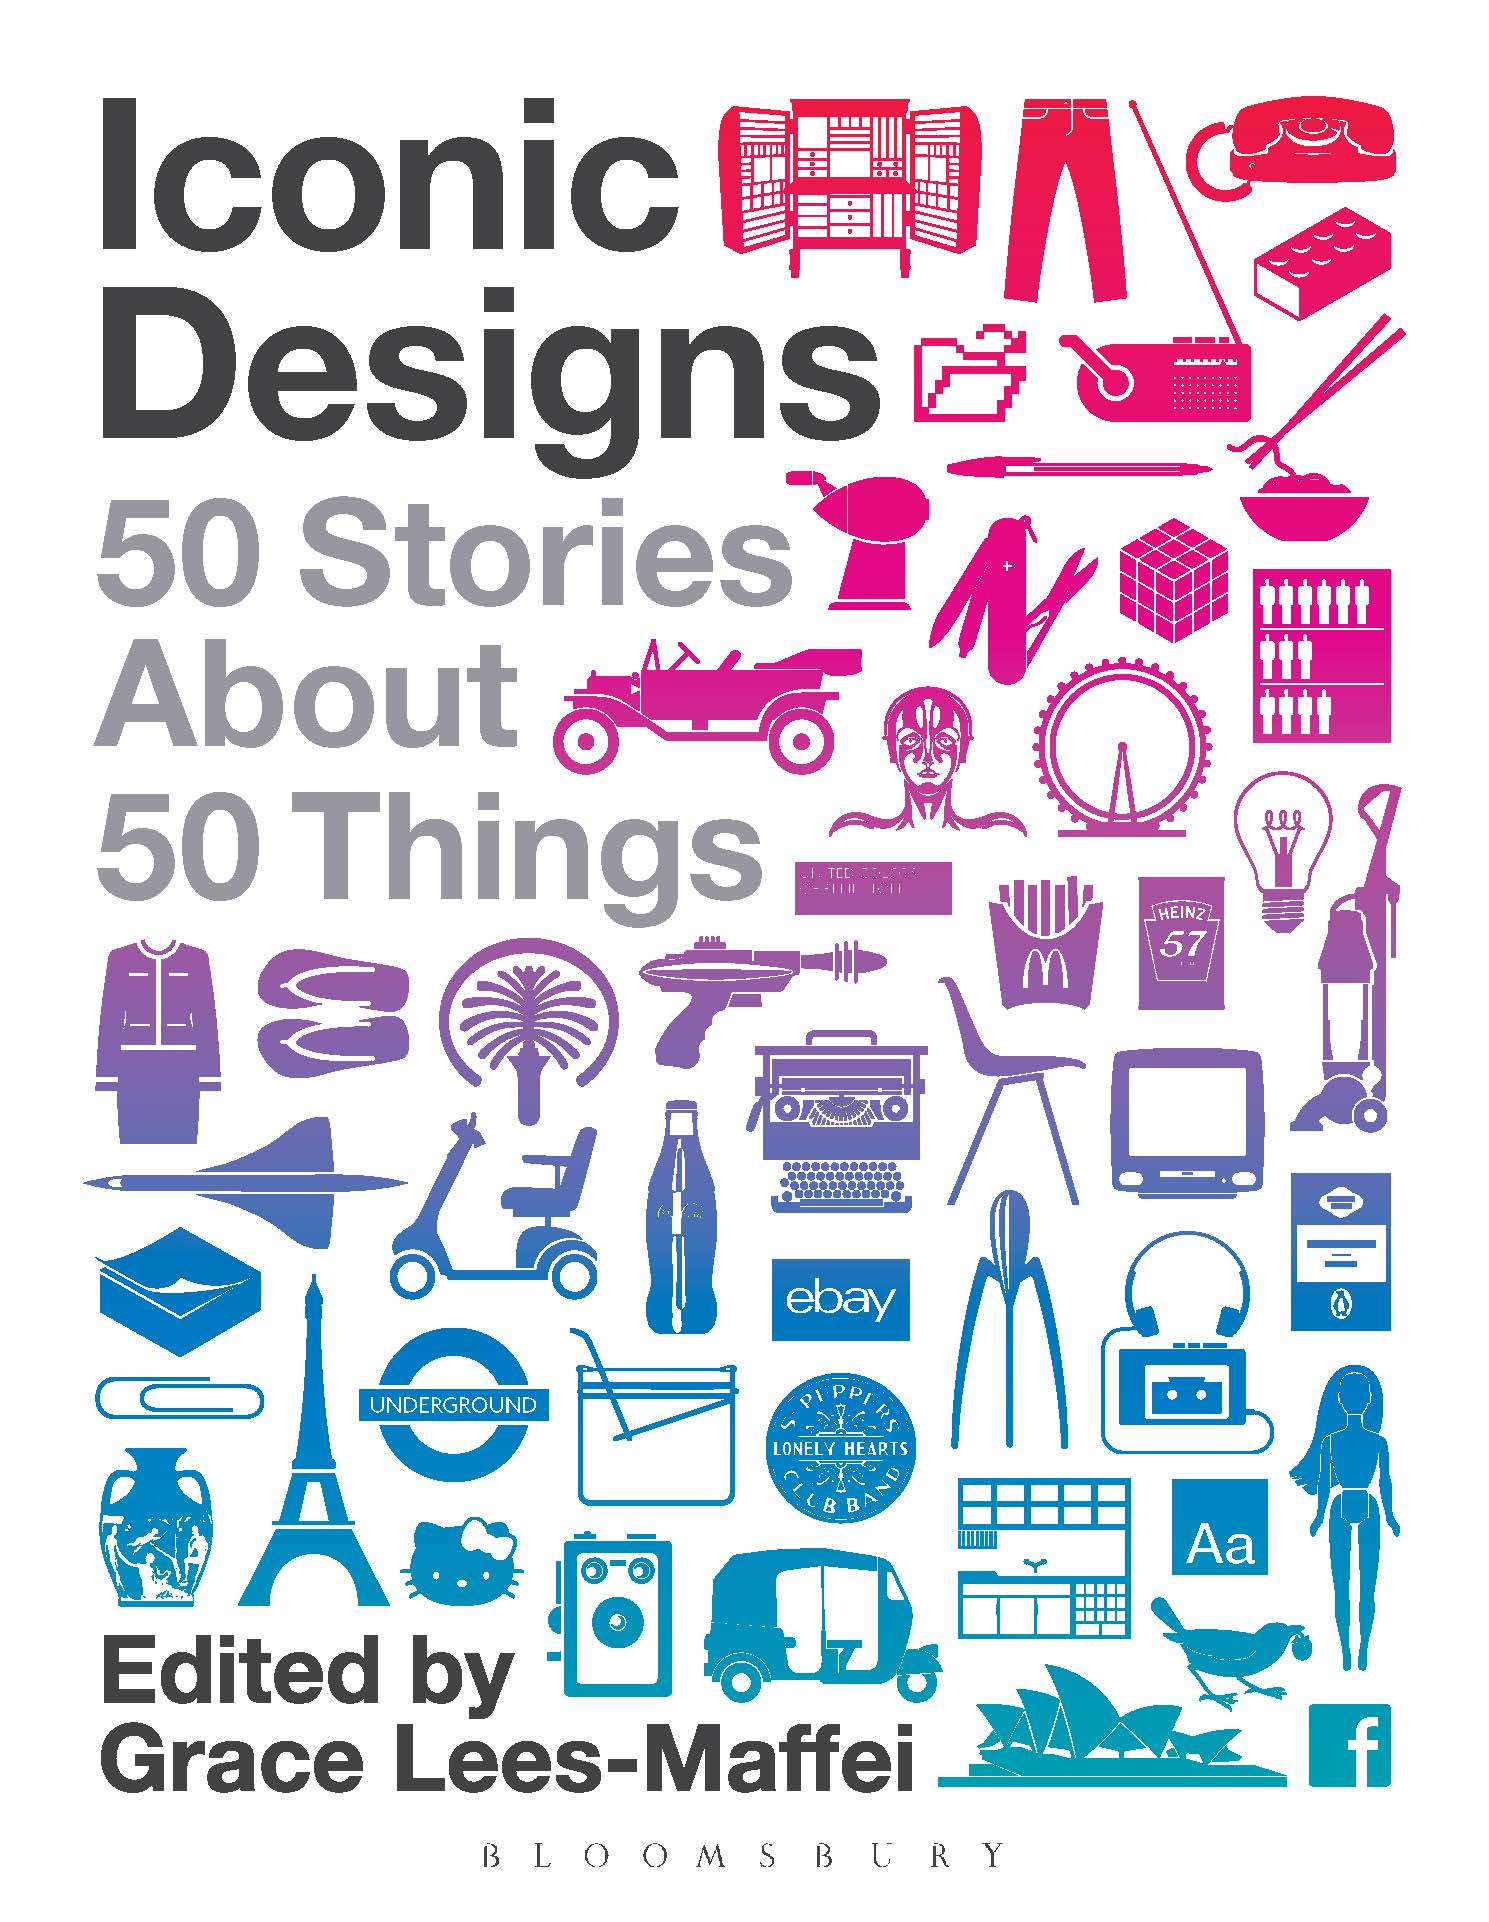 Iconic Designs - 50 Stories about 50 Things. London: Bloomsbury, 2014.